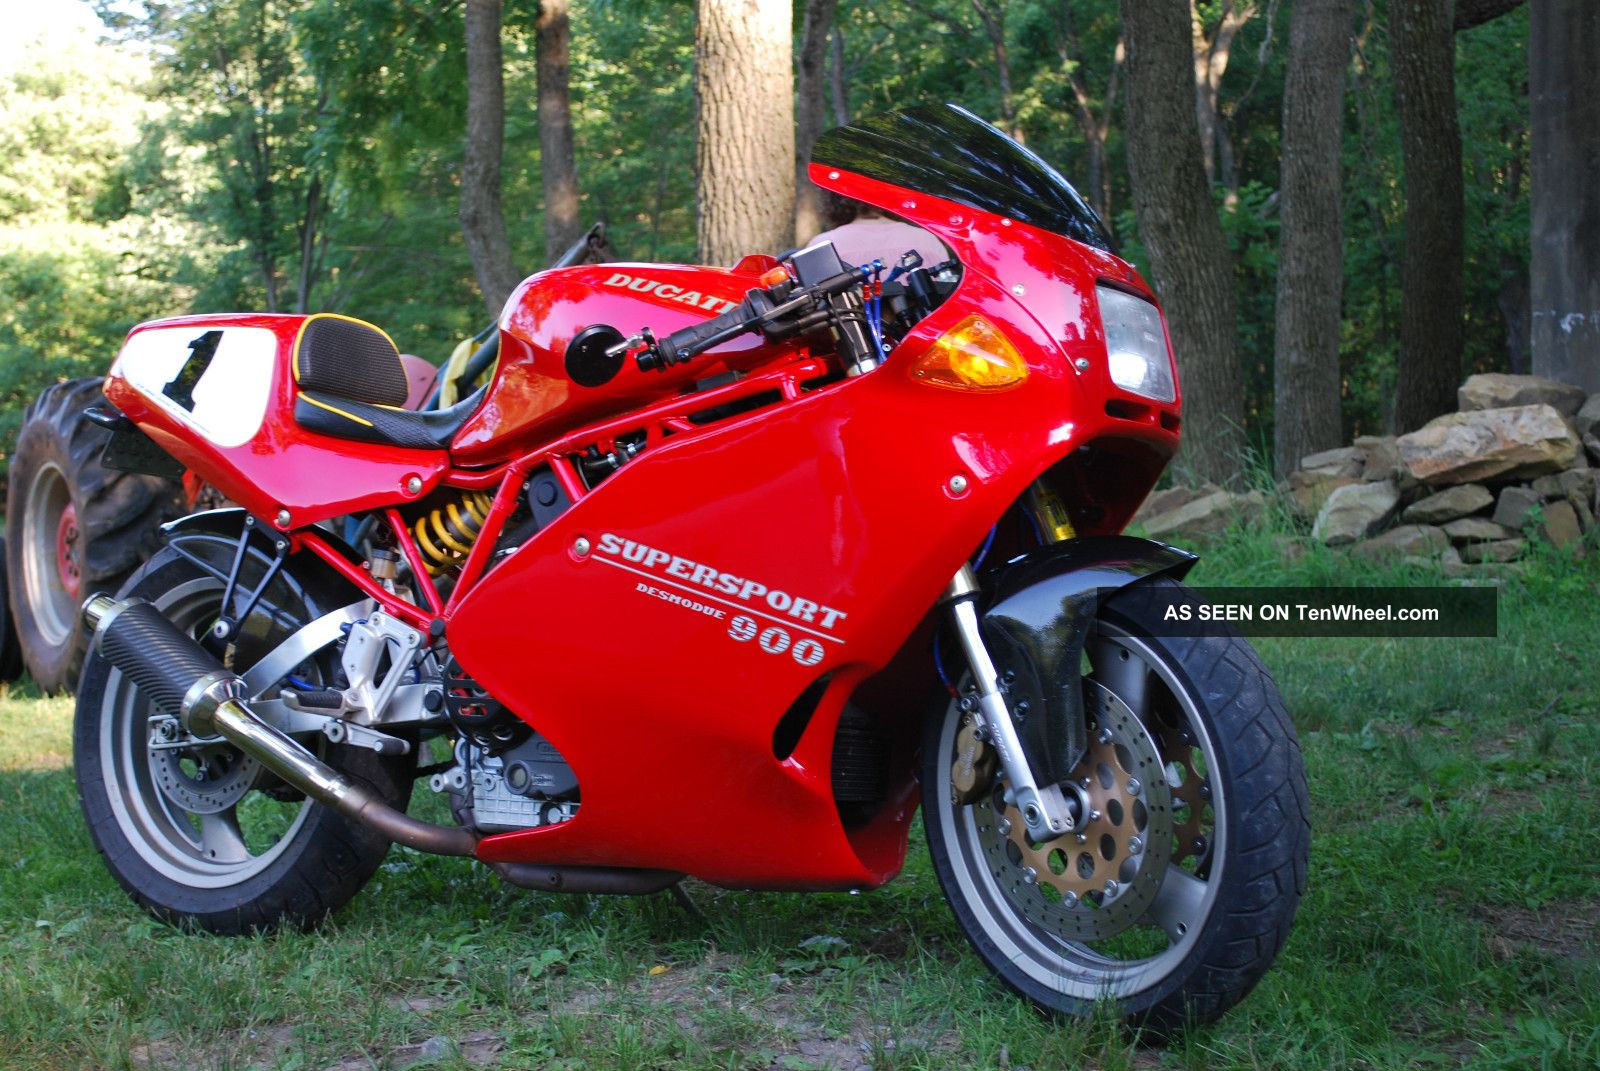 1995 Ducati 900ss Supersport photo